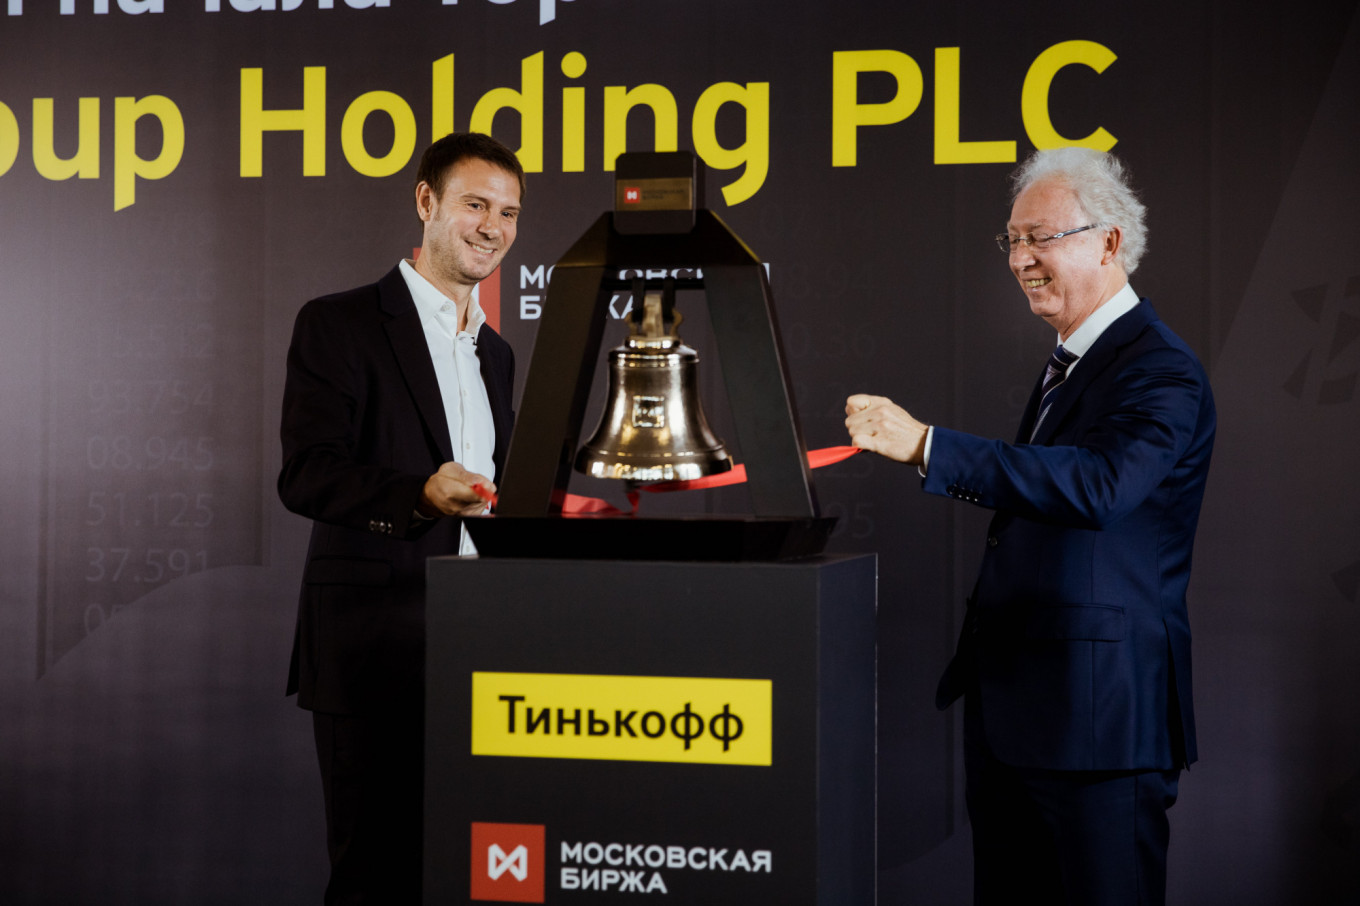 Tinkoff CEO Oliver Hughes and Oleg Vyugin of the Moscow Exchange ring the stock market's opening bell at a ceremony to mark the launch of Tinkoff's secondary listing.				 				Tinkoff Bank Media